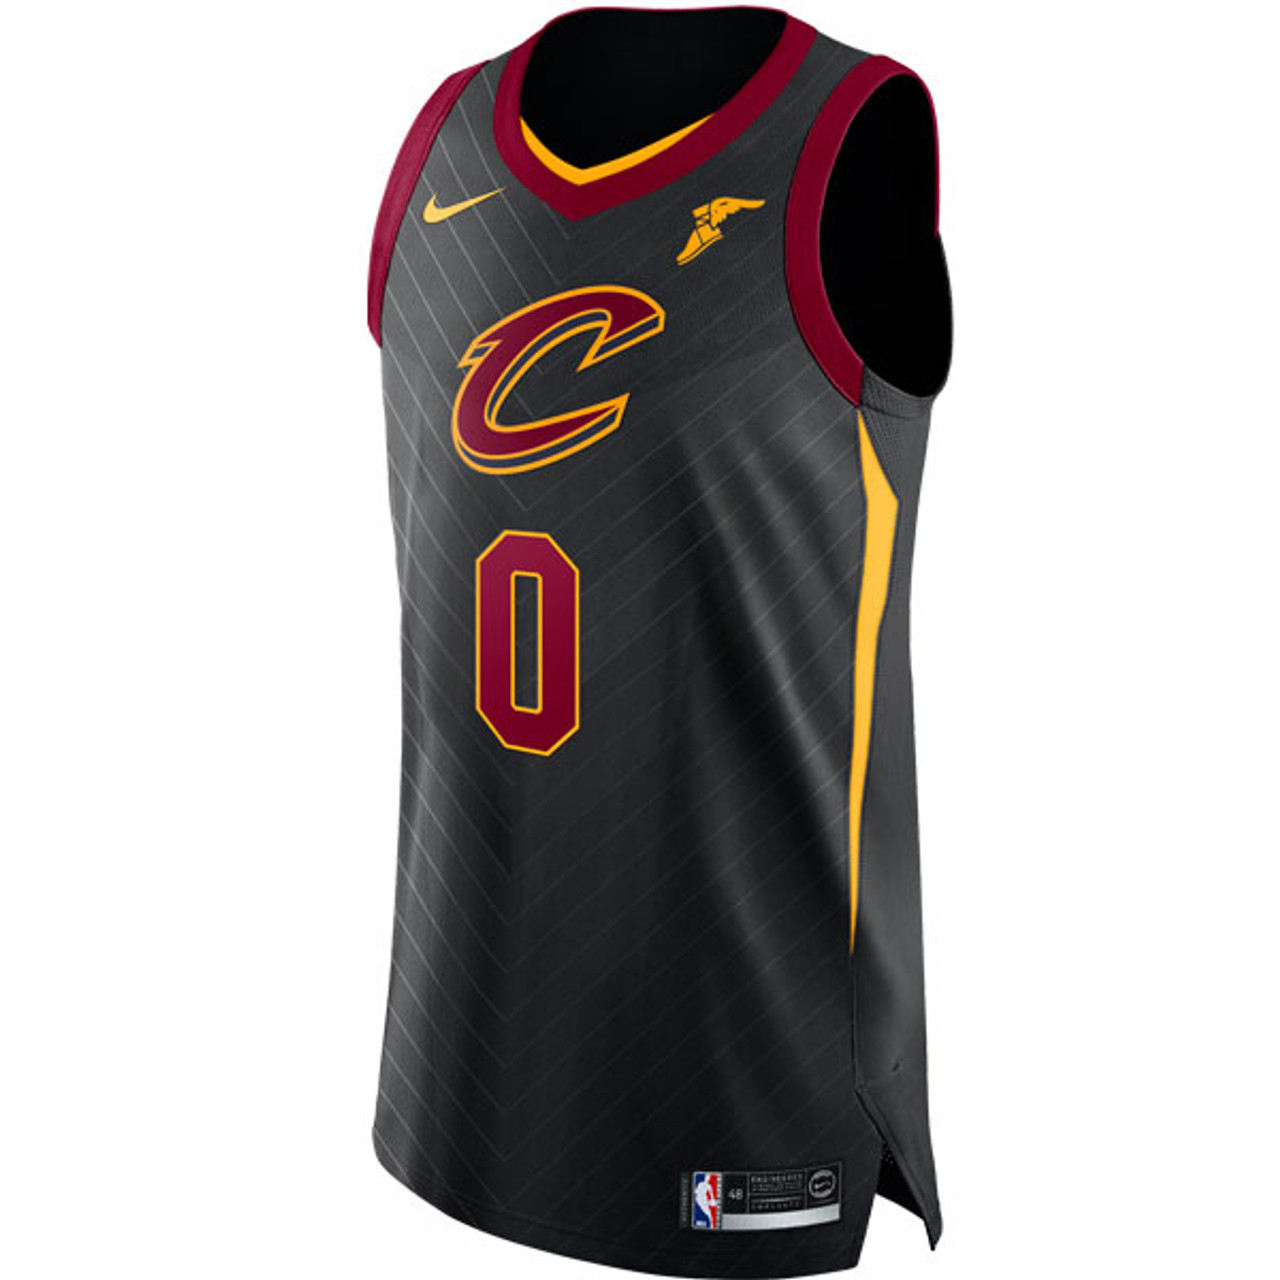 8e10cf3ec32b Kevin Love Statement Edition Authentic Jersey with Goodyear Wingfoot